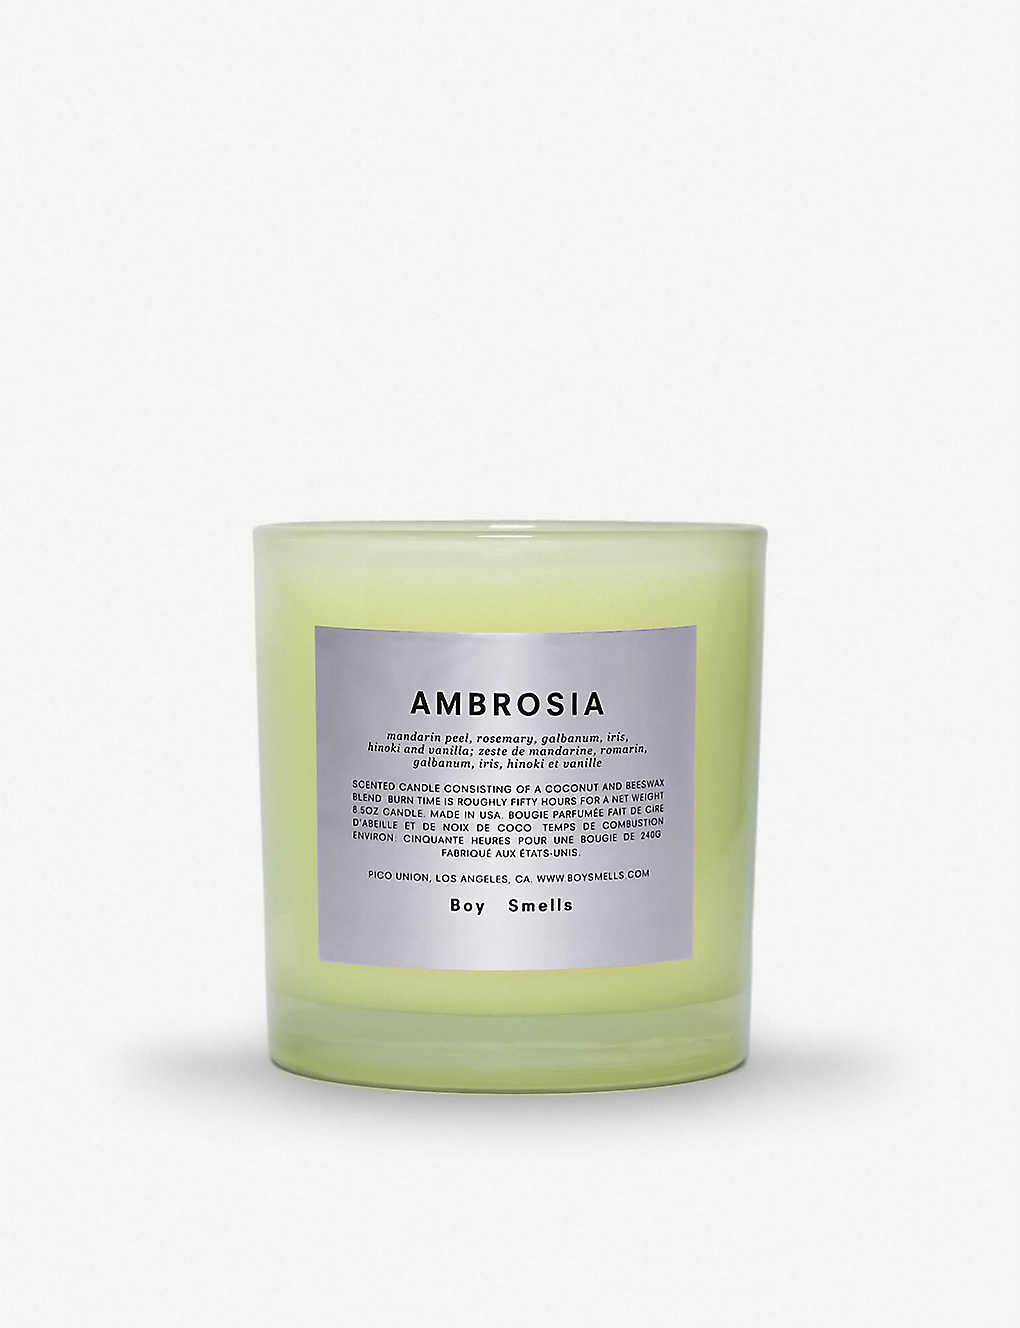 BOY SMELLS: Ambrosia scented candle 240g